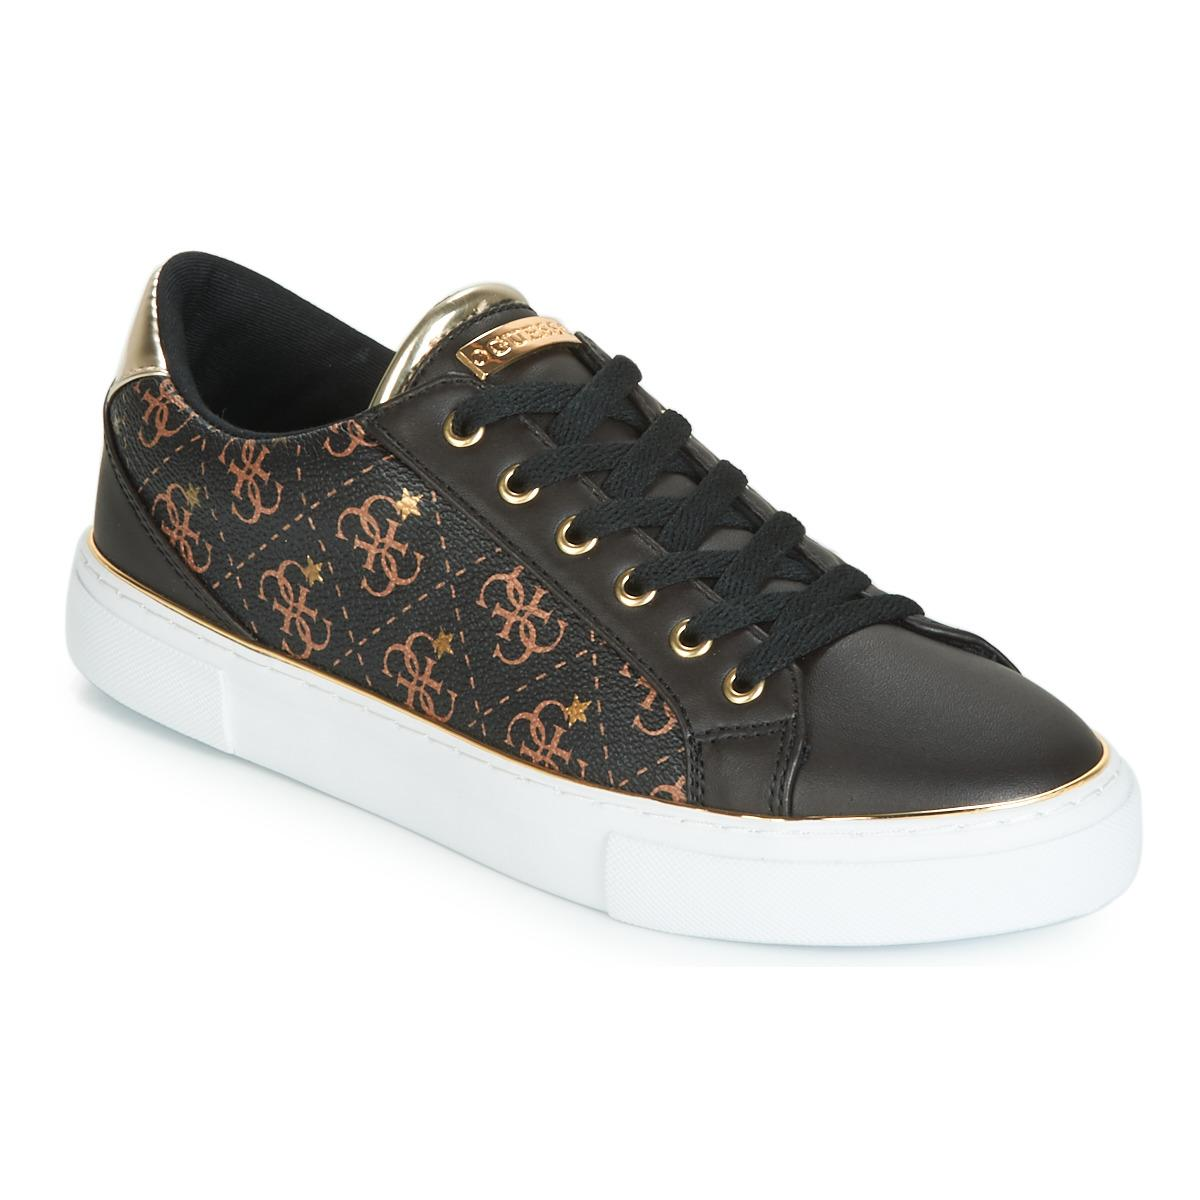 Guess Grooved Women's Shoes (trainers